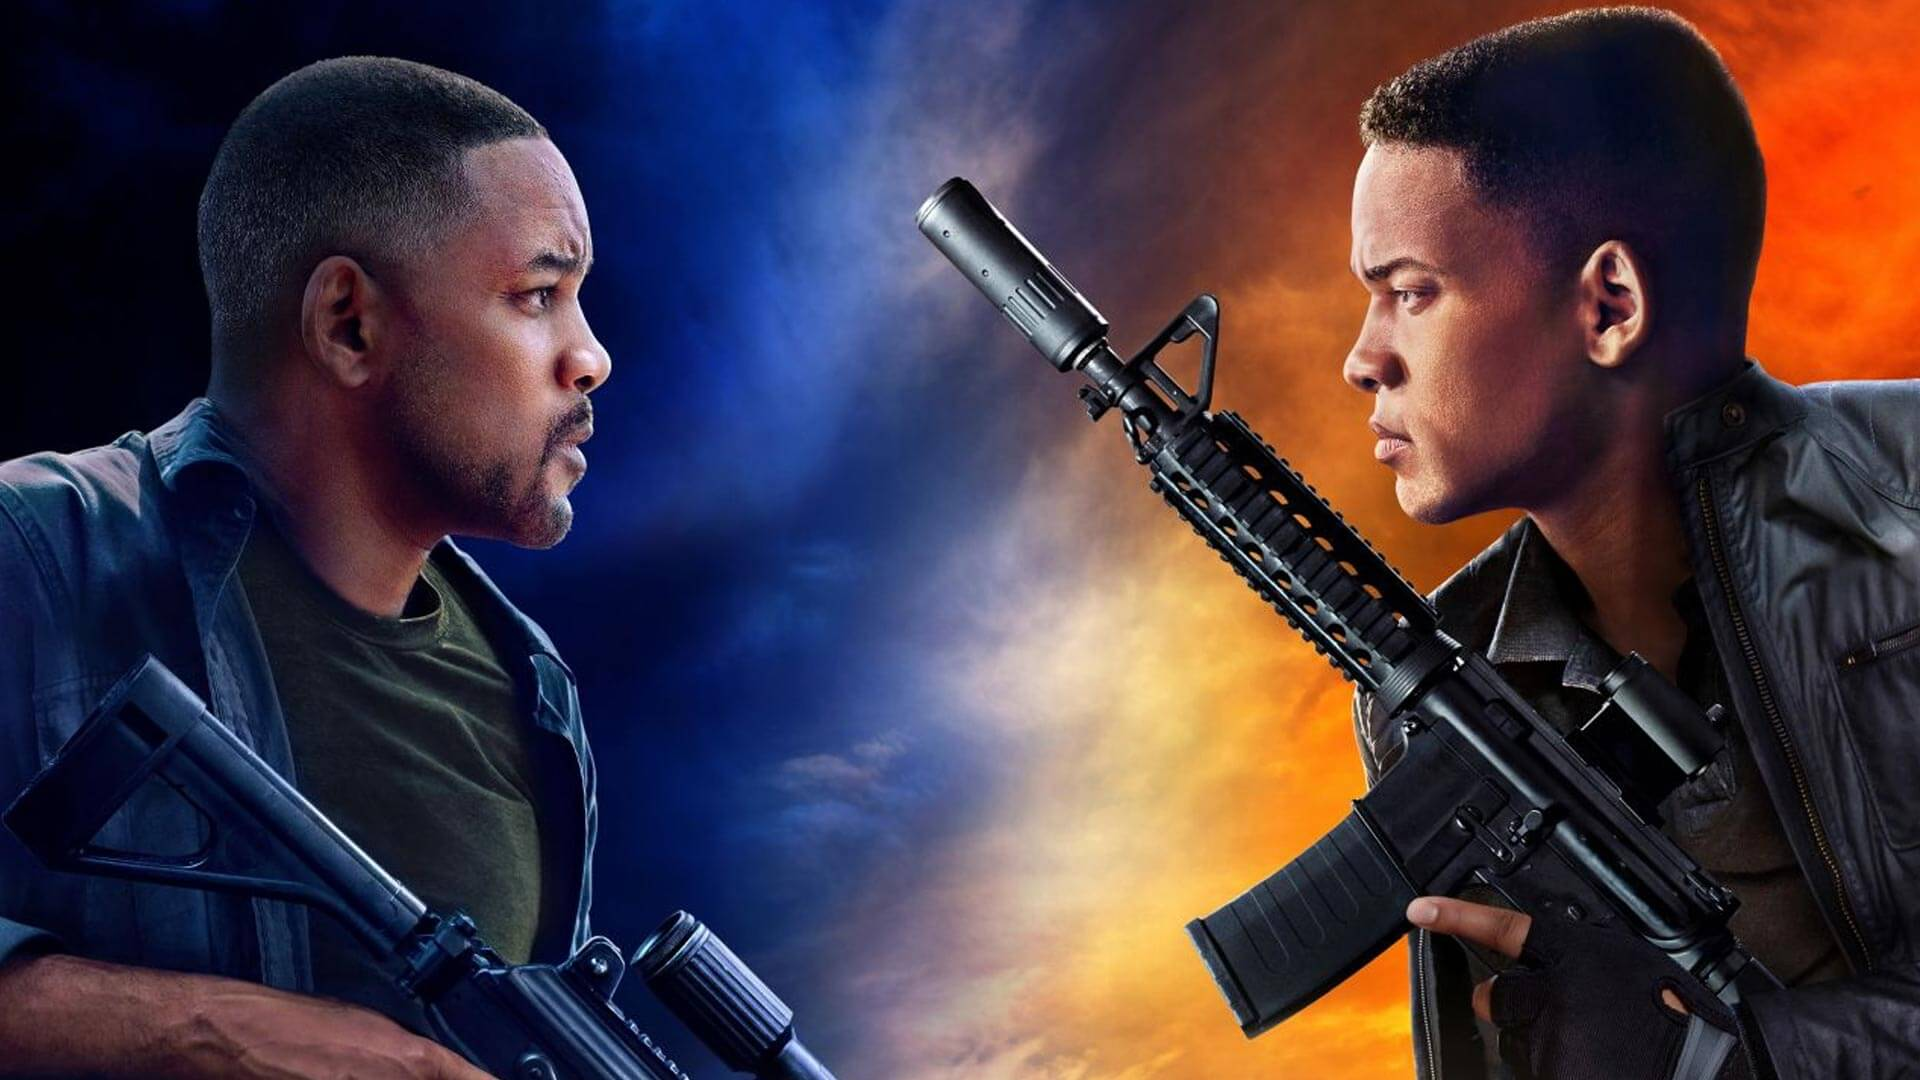 Gemini Man Review: Big Willy vs The Fresh Prince